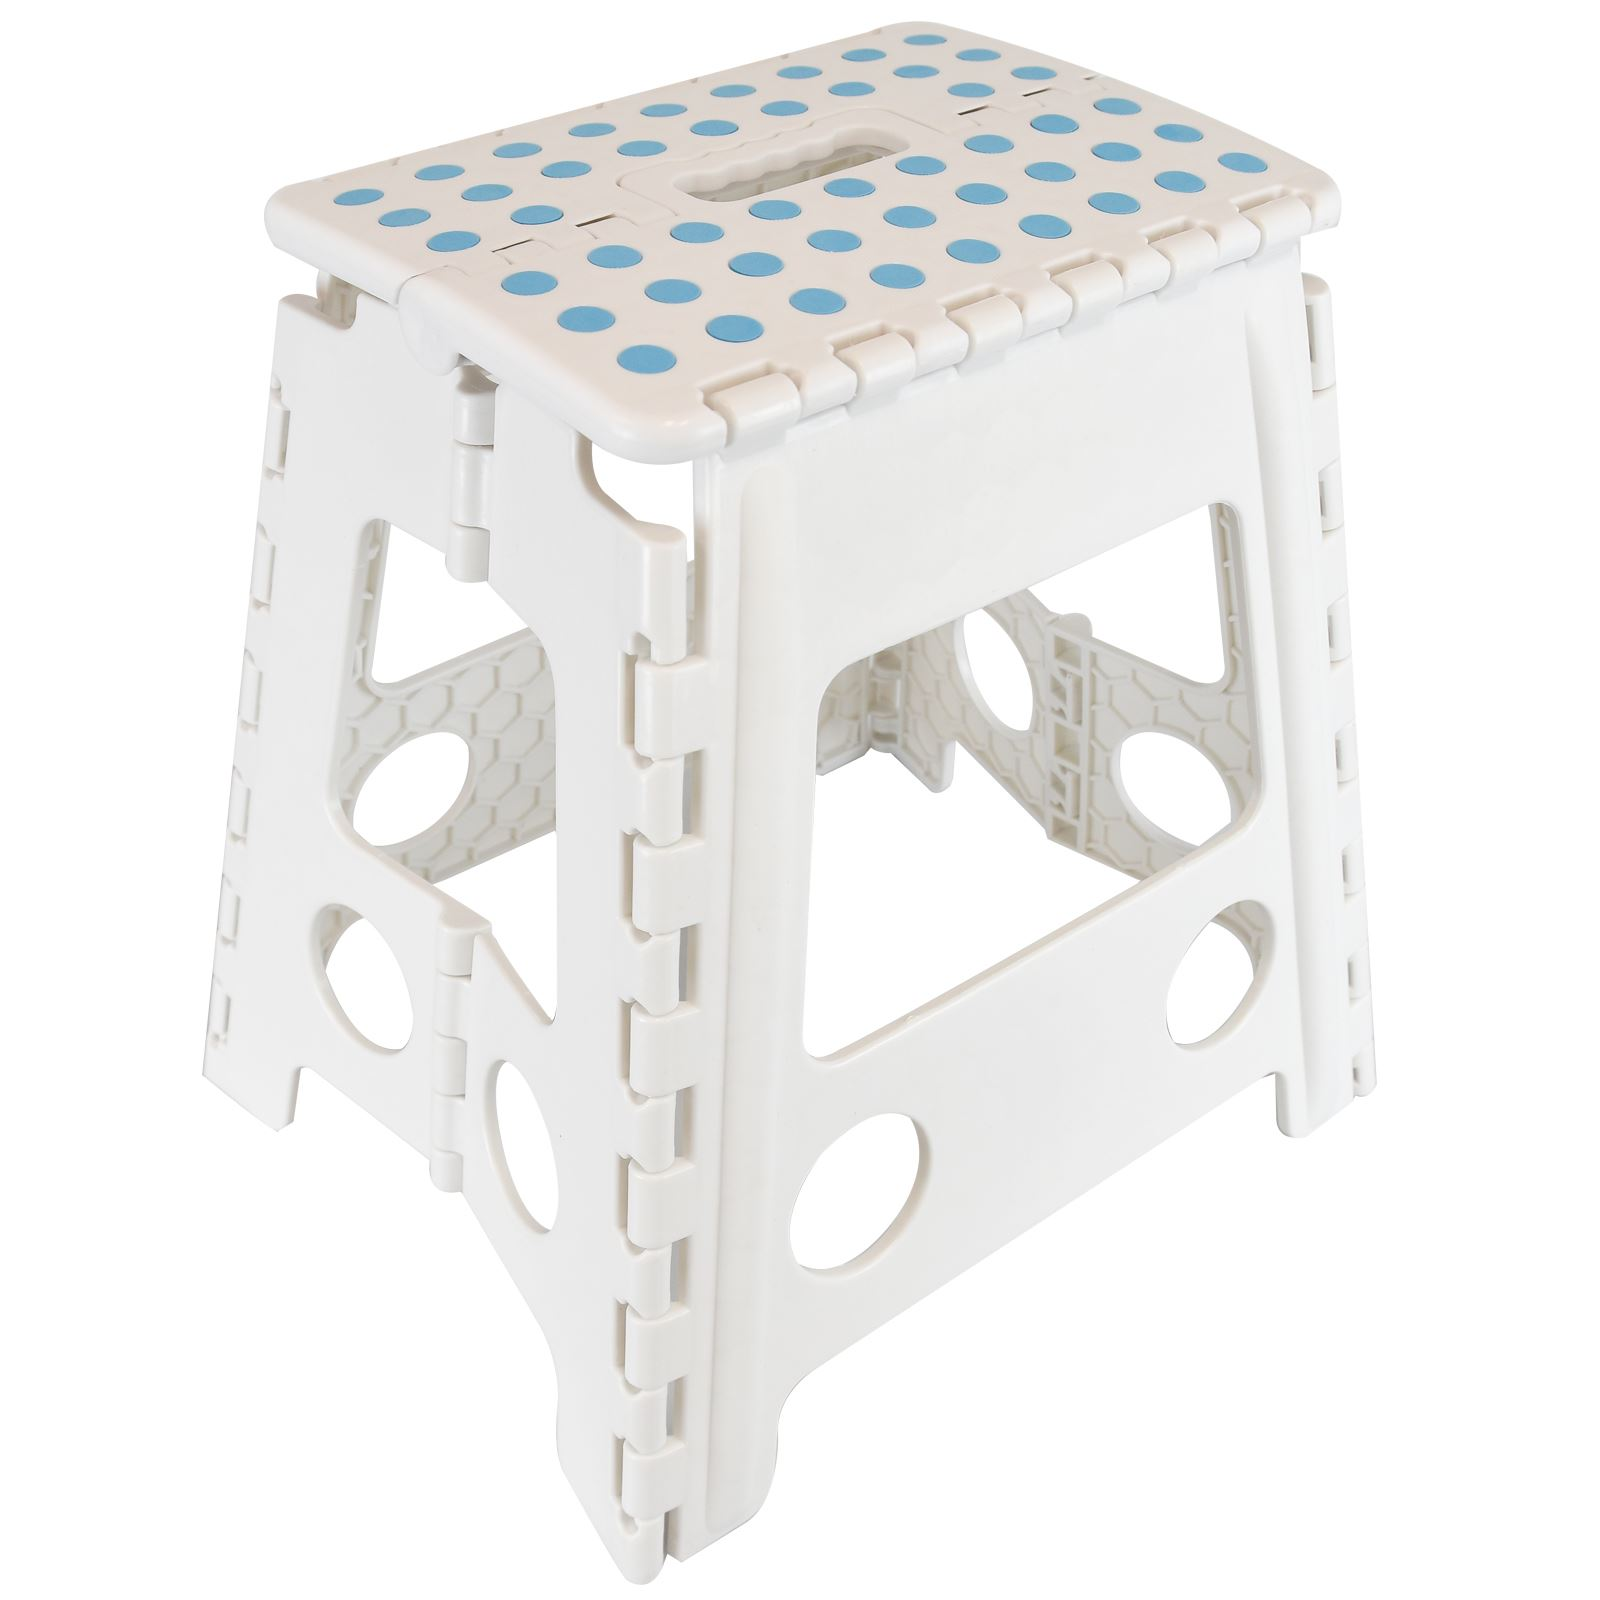 #3D738E Large Multi Purpose Fold Step Stool Plastic Home Kitchen Easy Foldable  with 1600x1600 px of Recommended Tall Plastic Stool 16001600 save image @ avoidforclosure.info